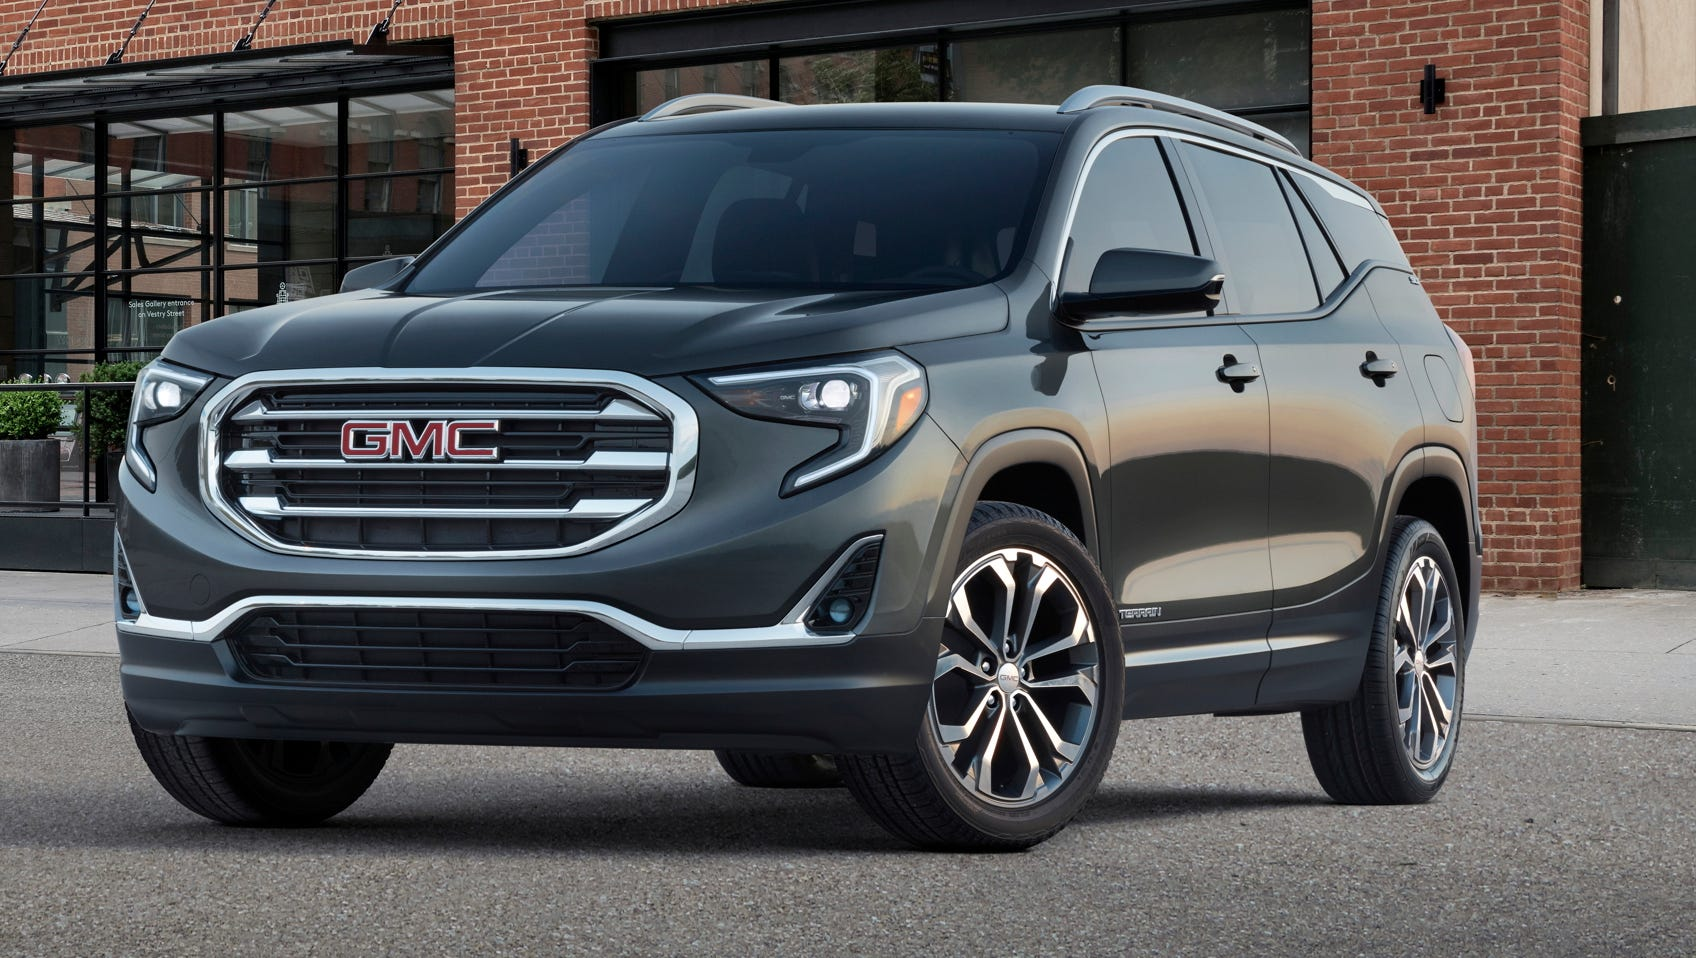 Gm Shows Off 2018 Gmc Terrain Suv With Bold New Nose